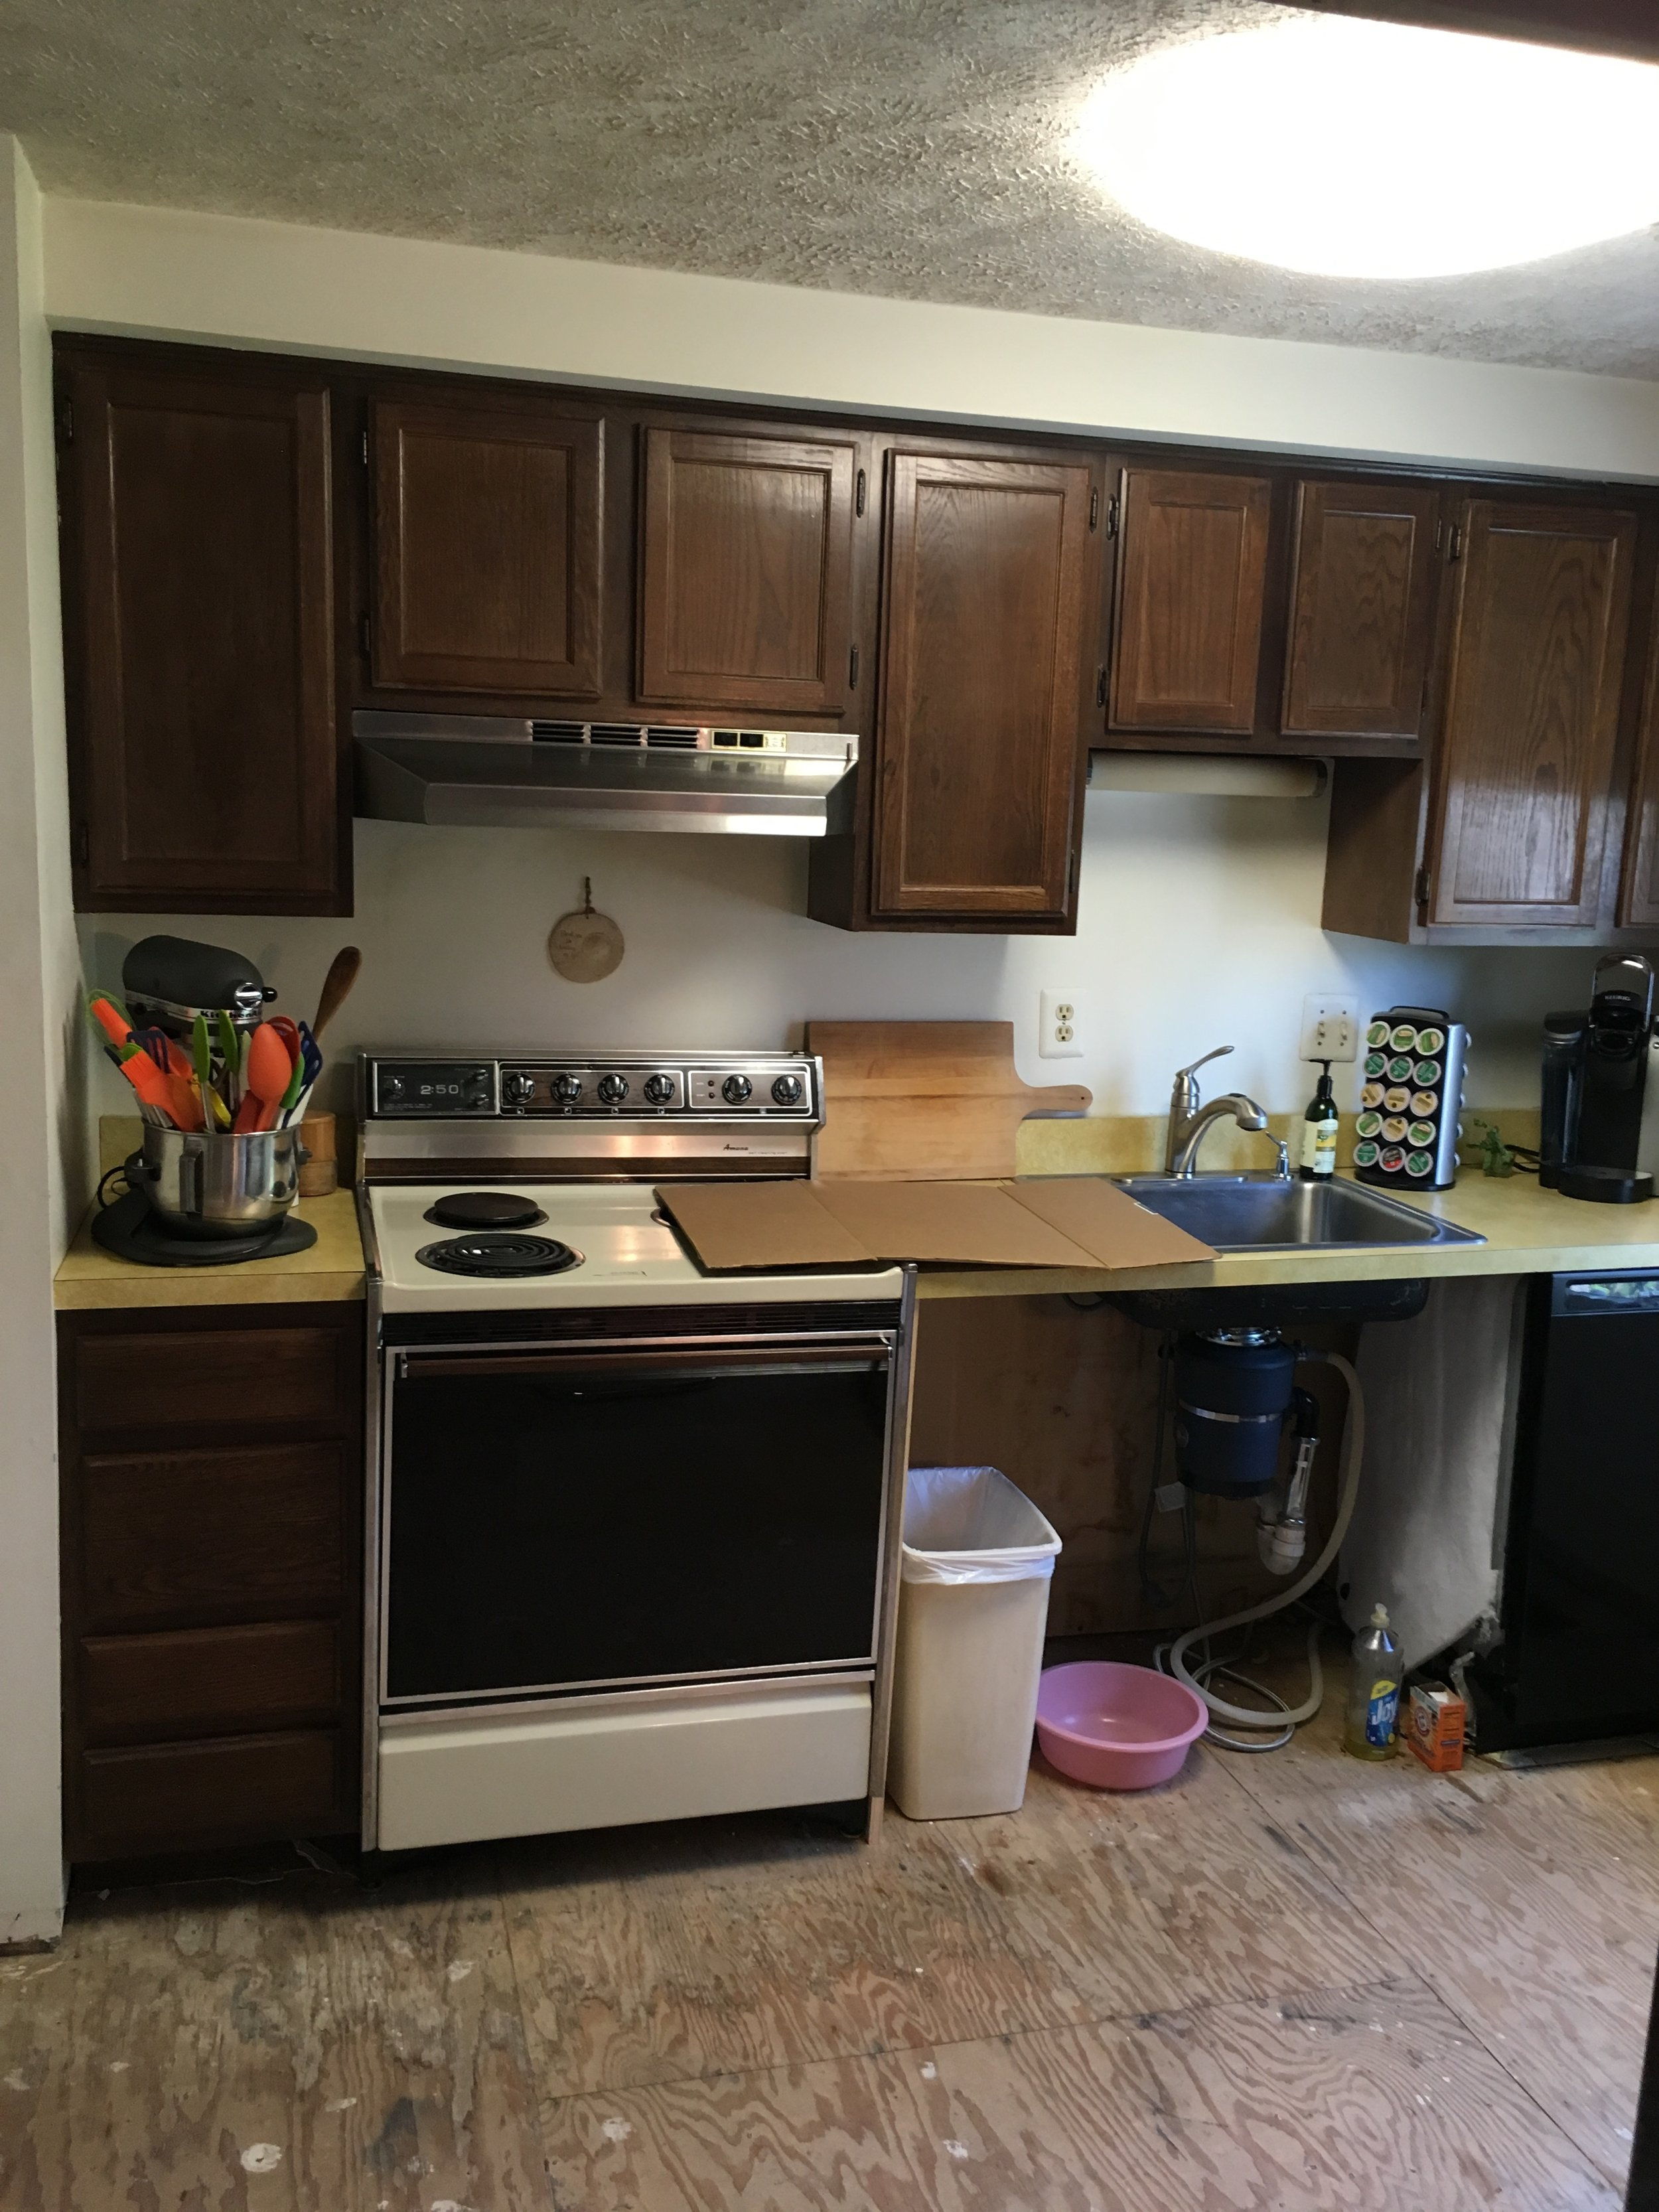 Kitchen (the leak really ruined it)